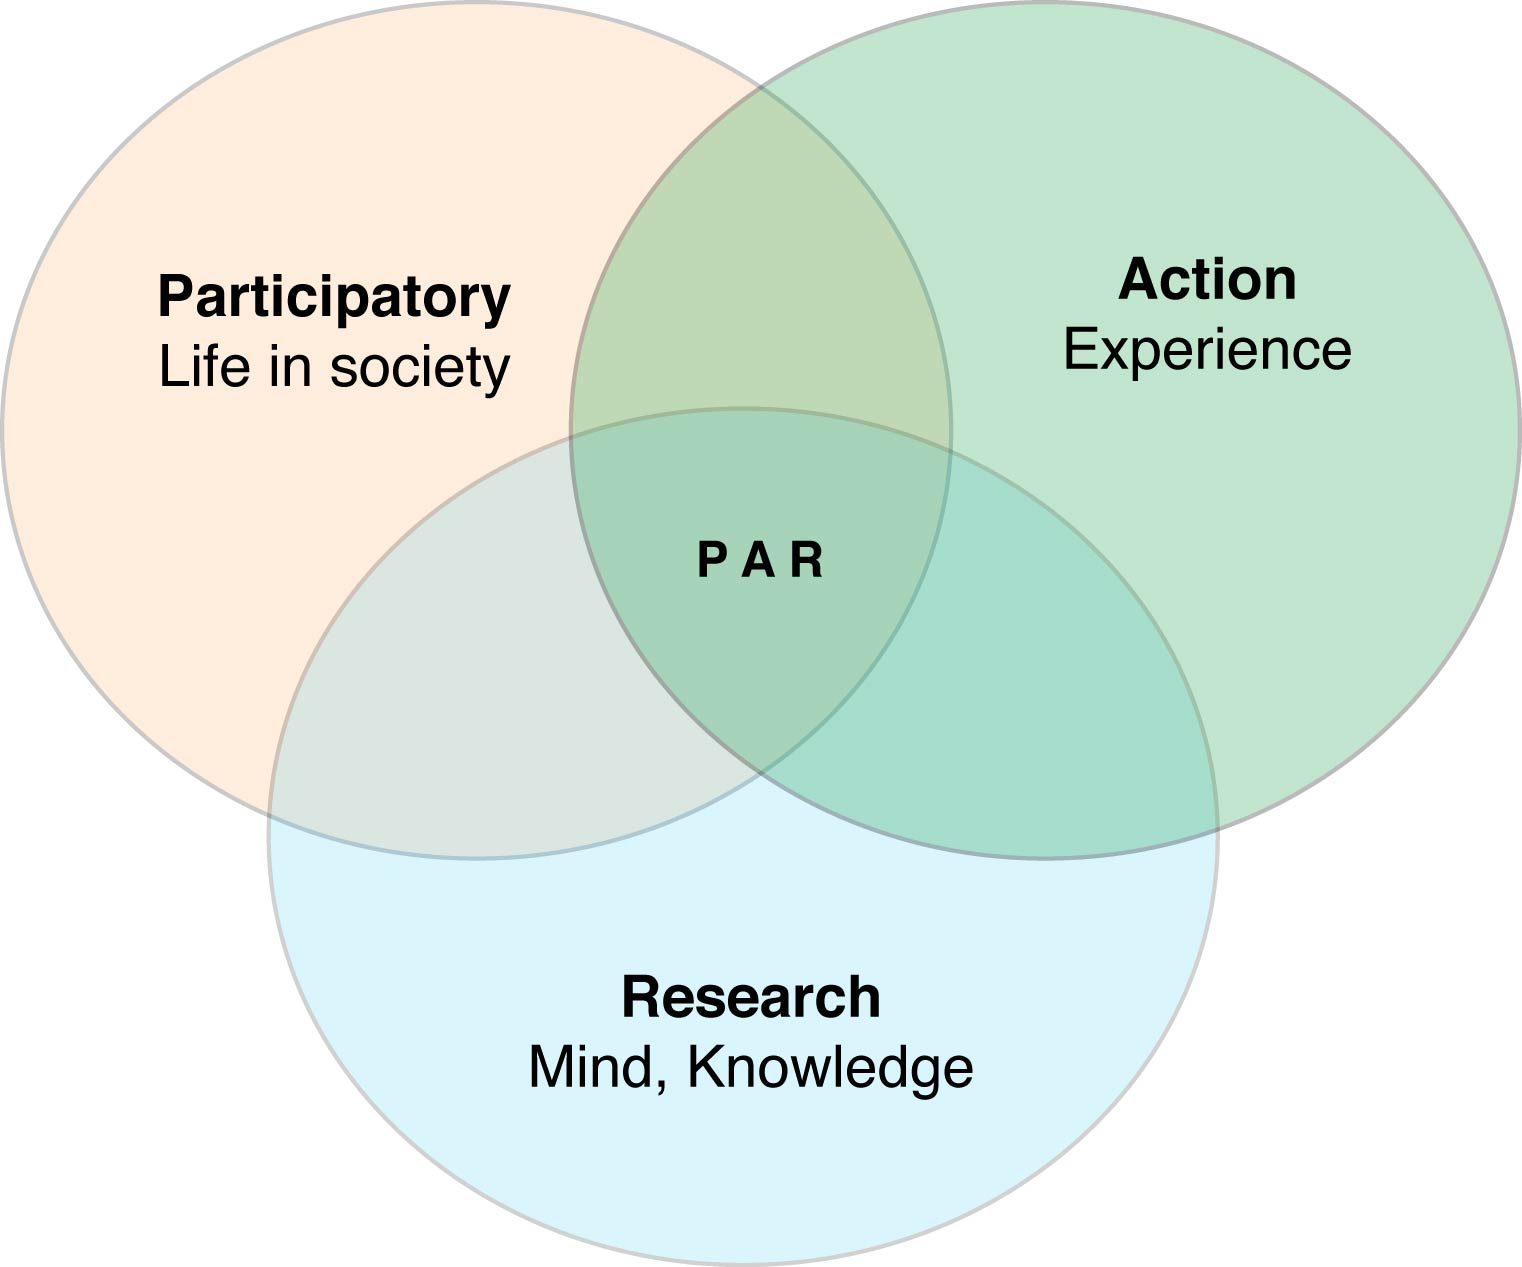 Images Of A Venn Diagram: Venn diagram of Participatory Action Research.jpg - Wikipedia,Chart